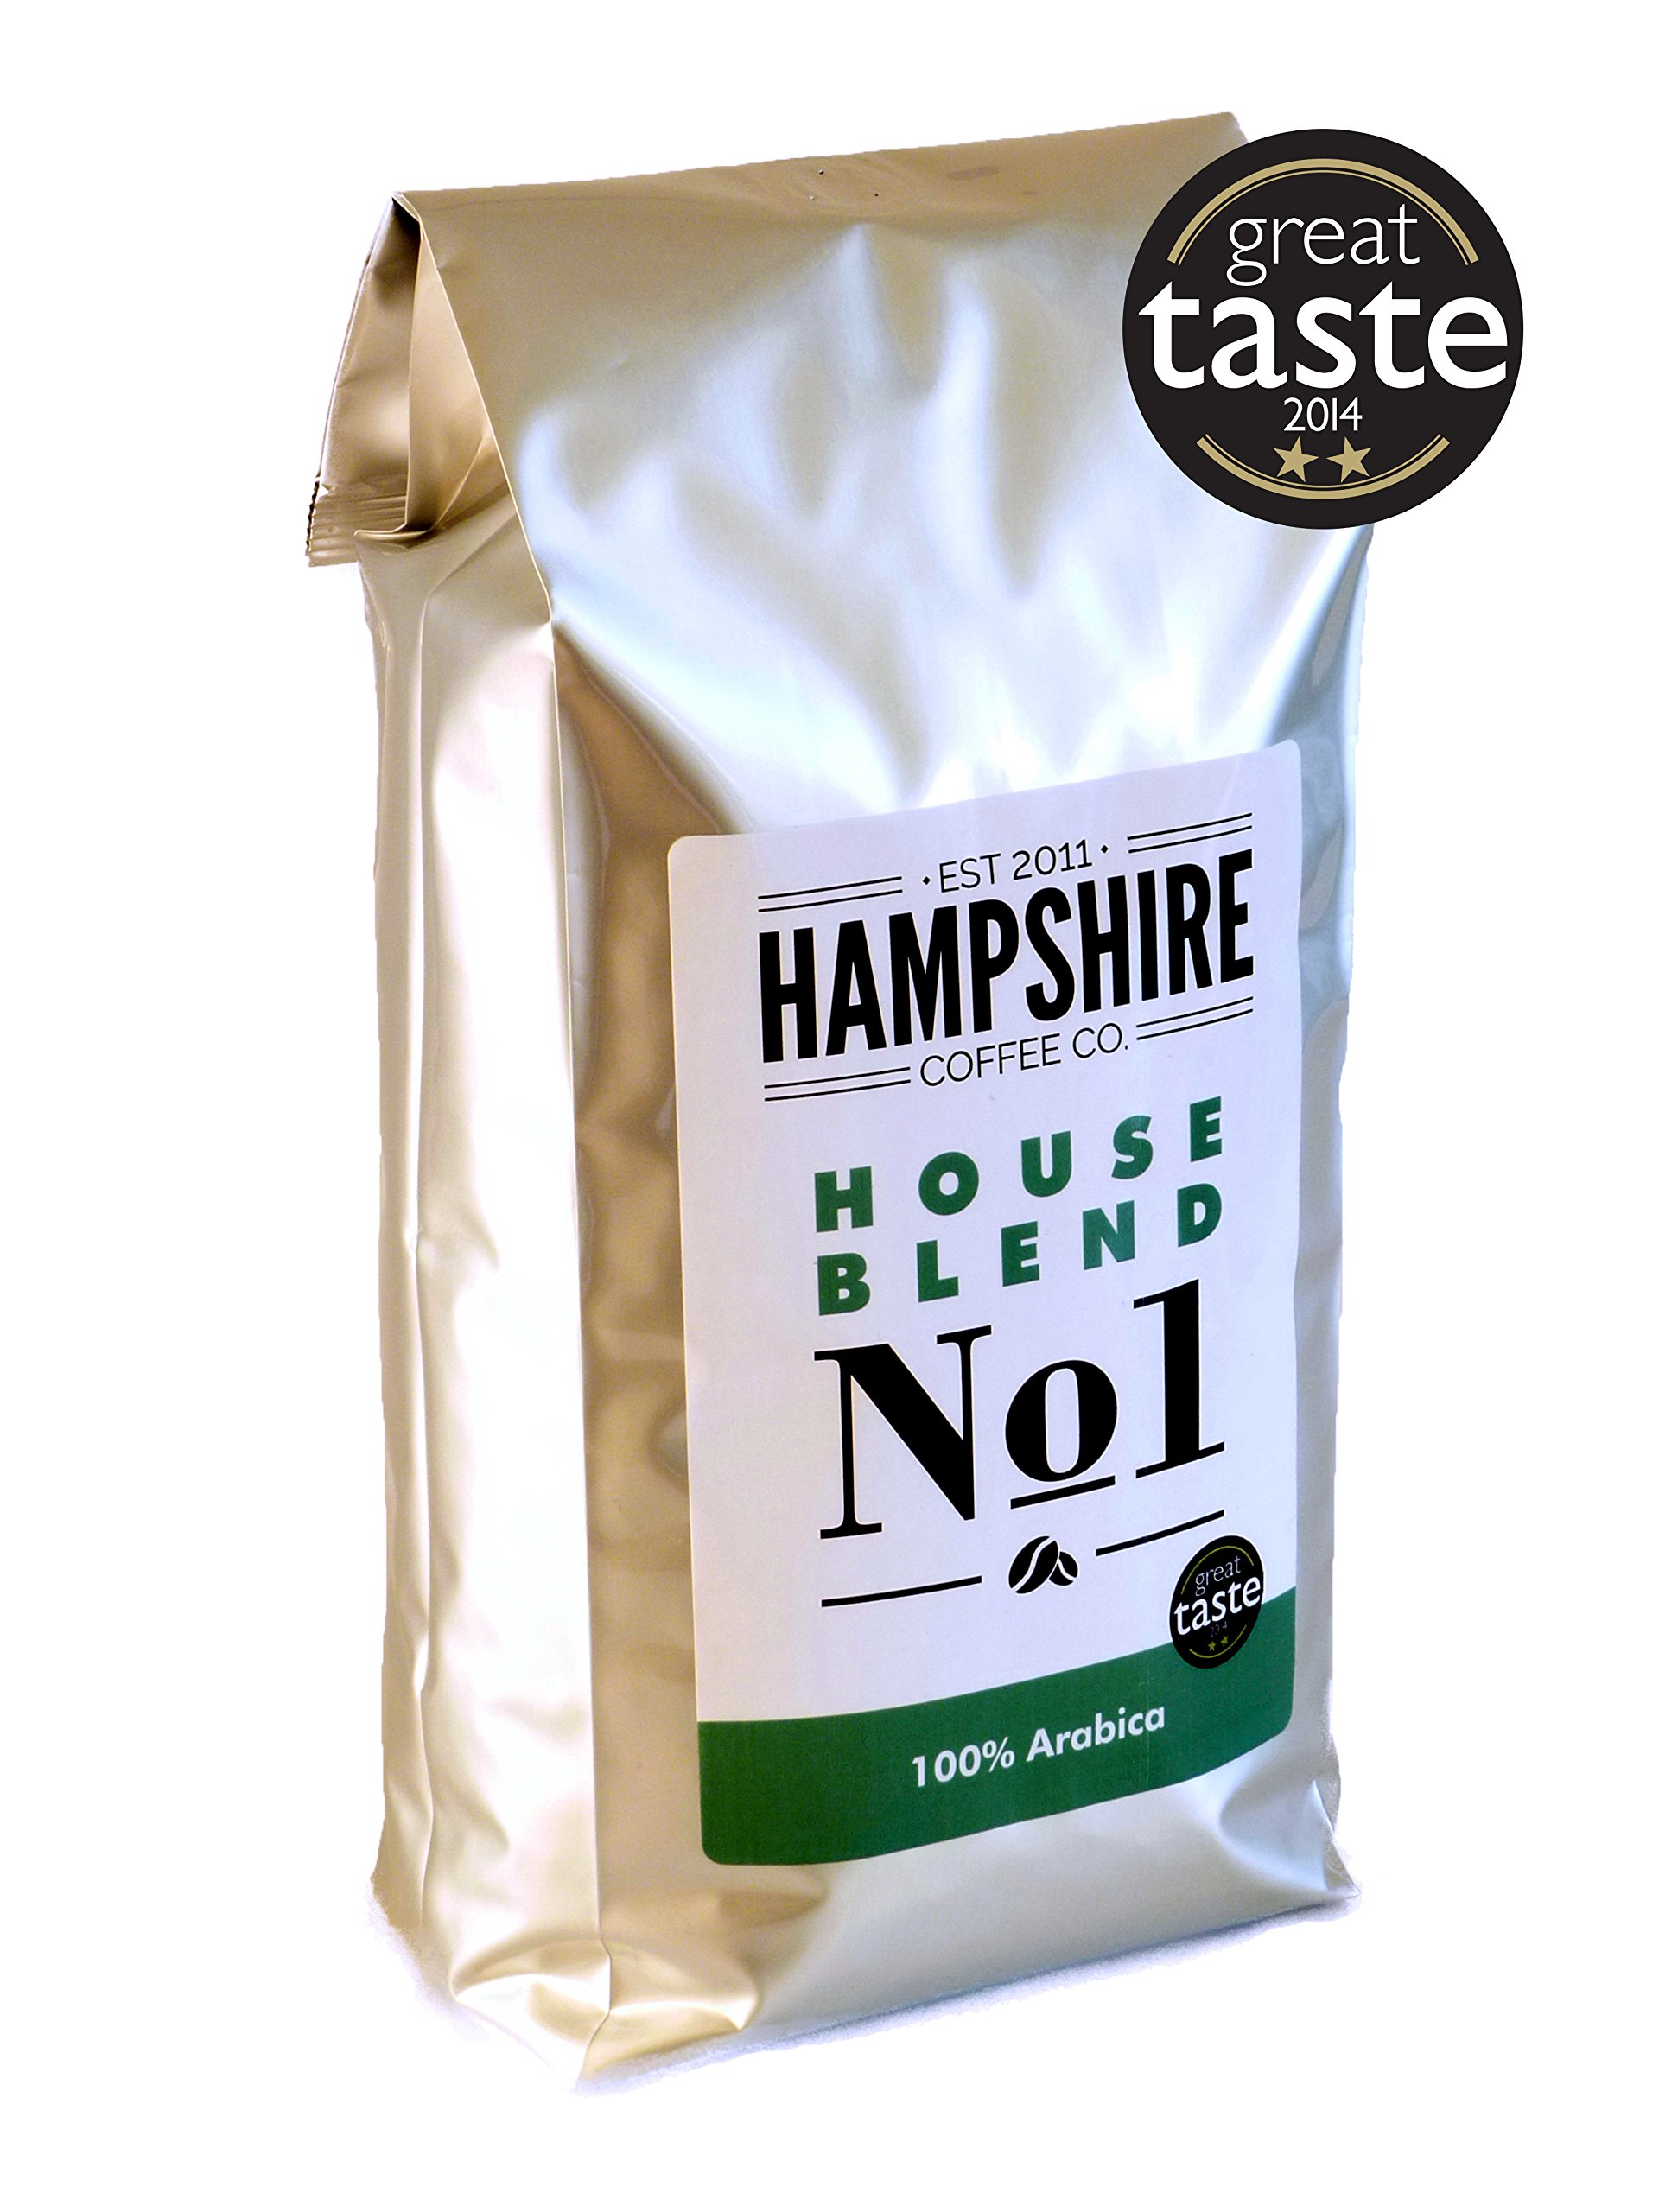 Hampshire-Coffee-Co-Medium-Roast-Arabica-Whole-Beans-House-Blend-No-1-Great-Taste-Award-Winner-1kg-Bag